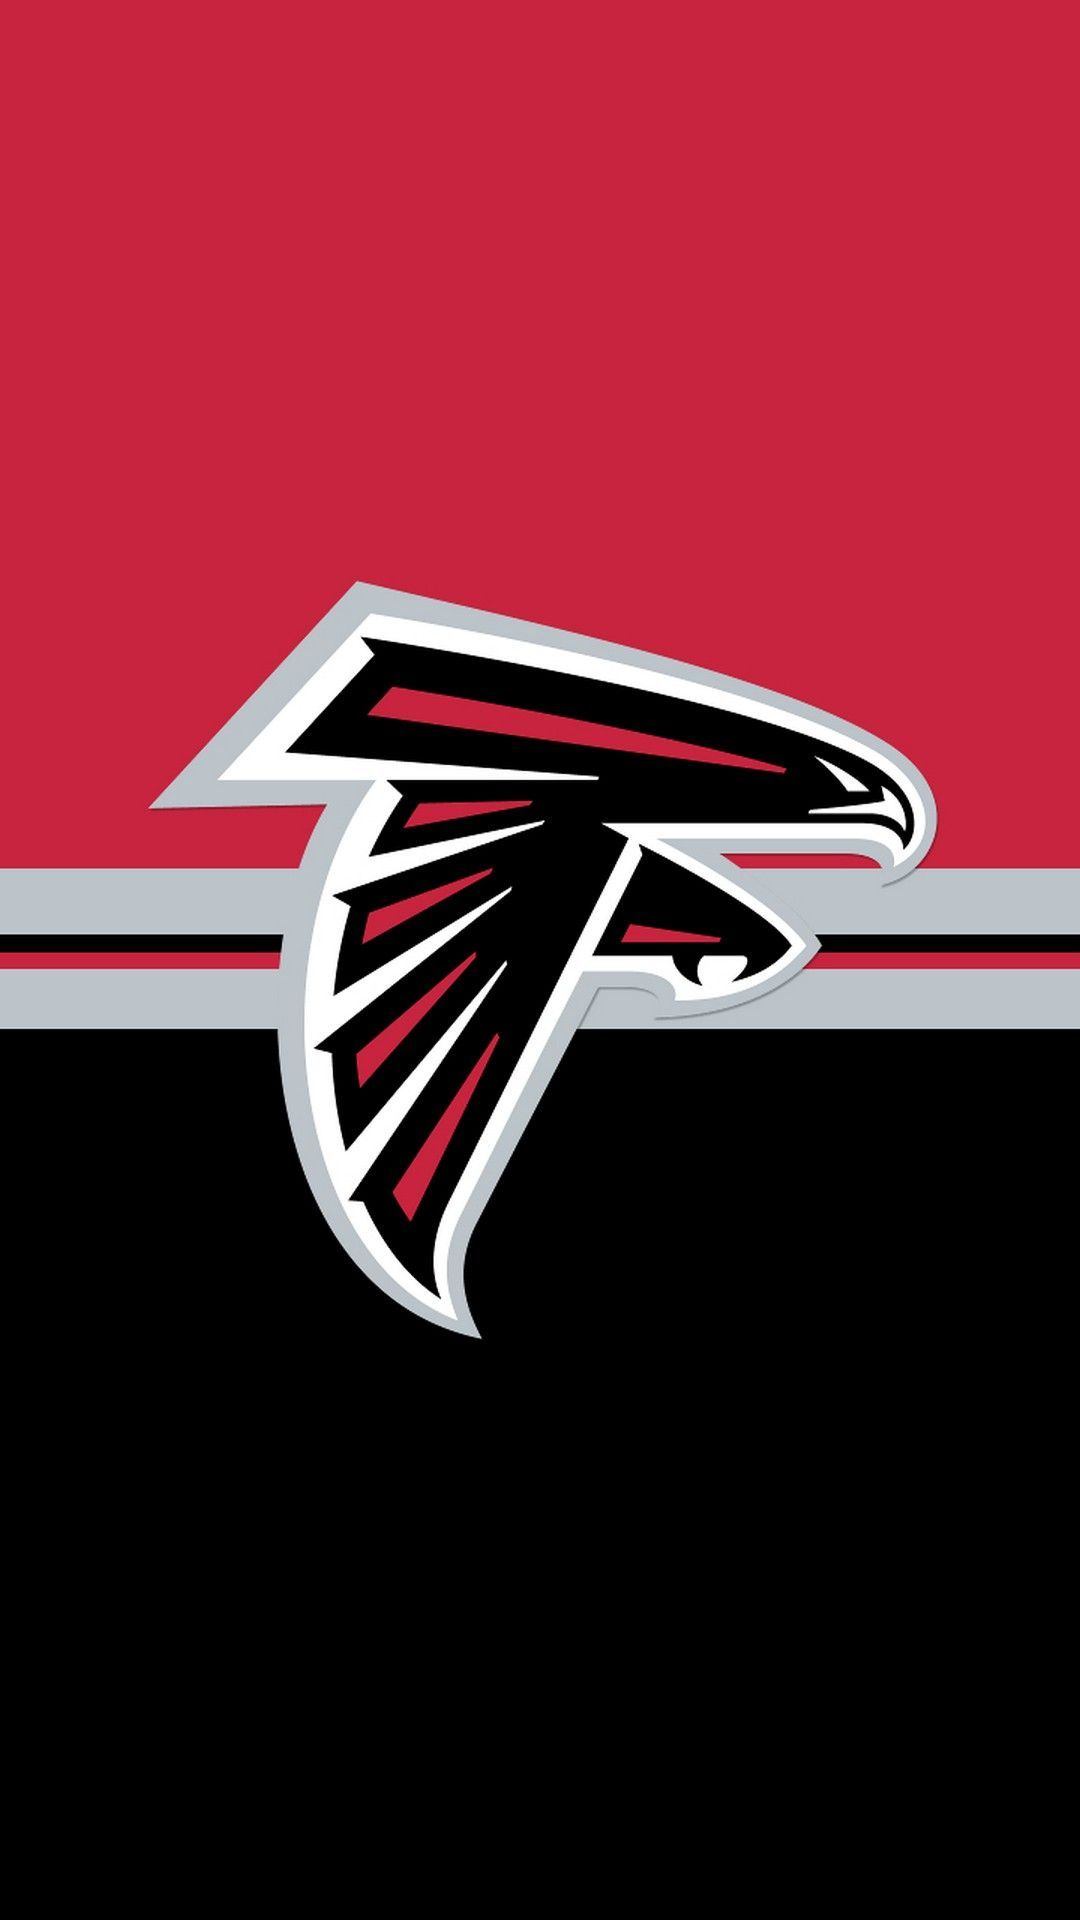 Atlanta Falcons Iphone Wallpaper Lock Screen Best Nfl Wallpaper Rise Up Atlanta Falcons Wallpaper Atlanta Falcons Locked Wallpaper